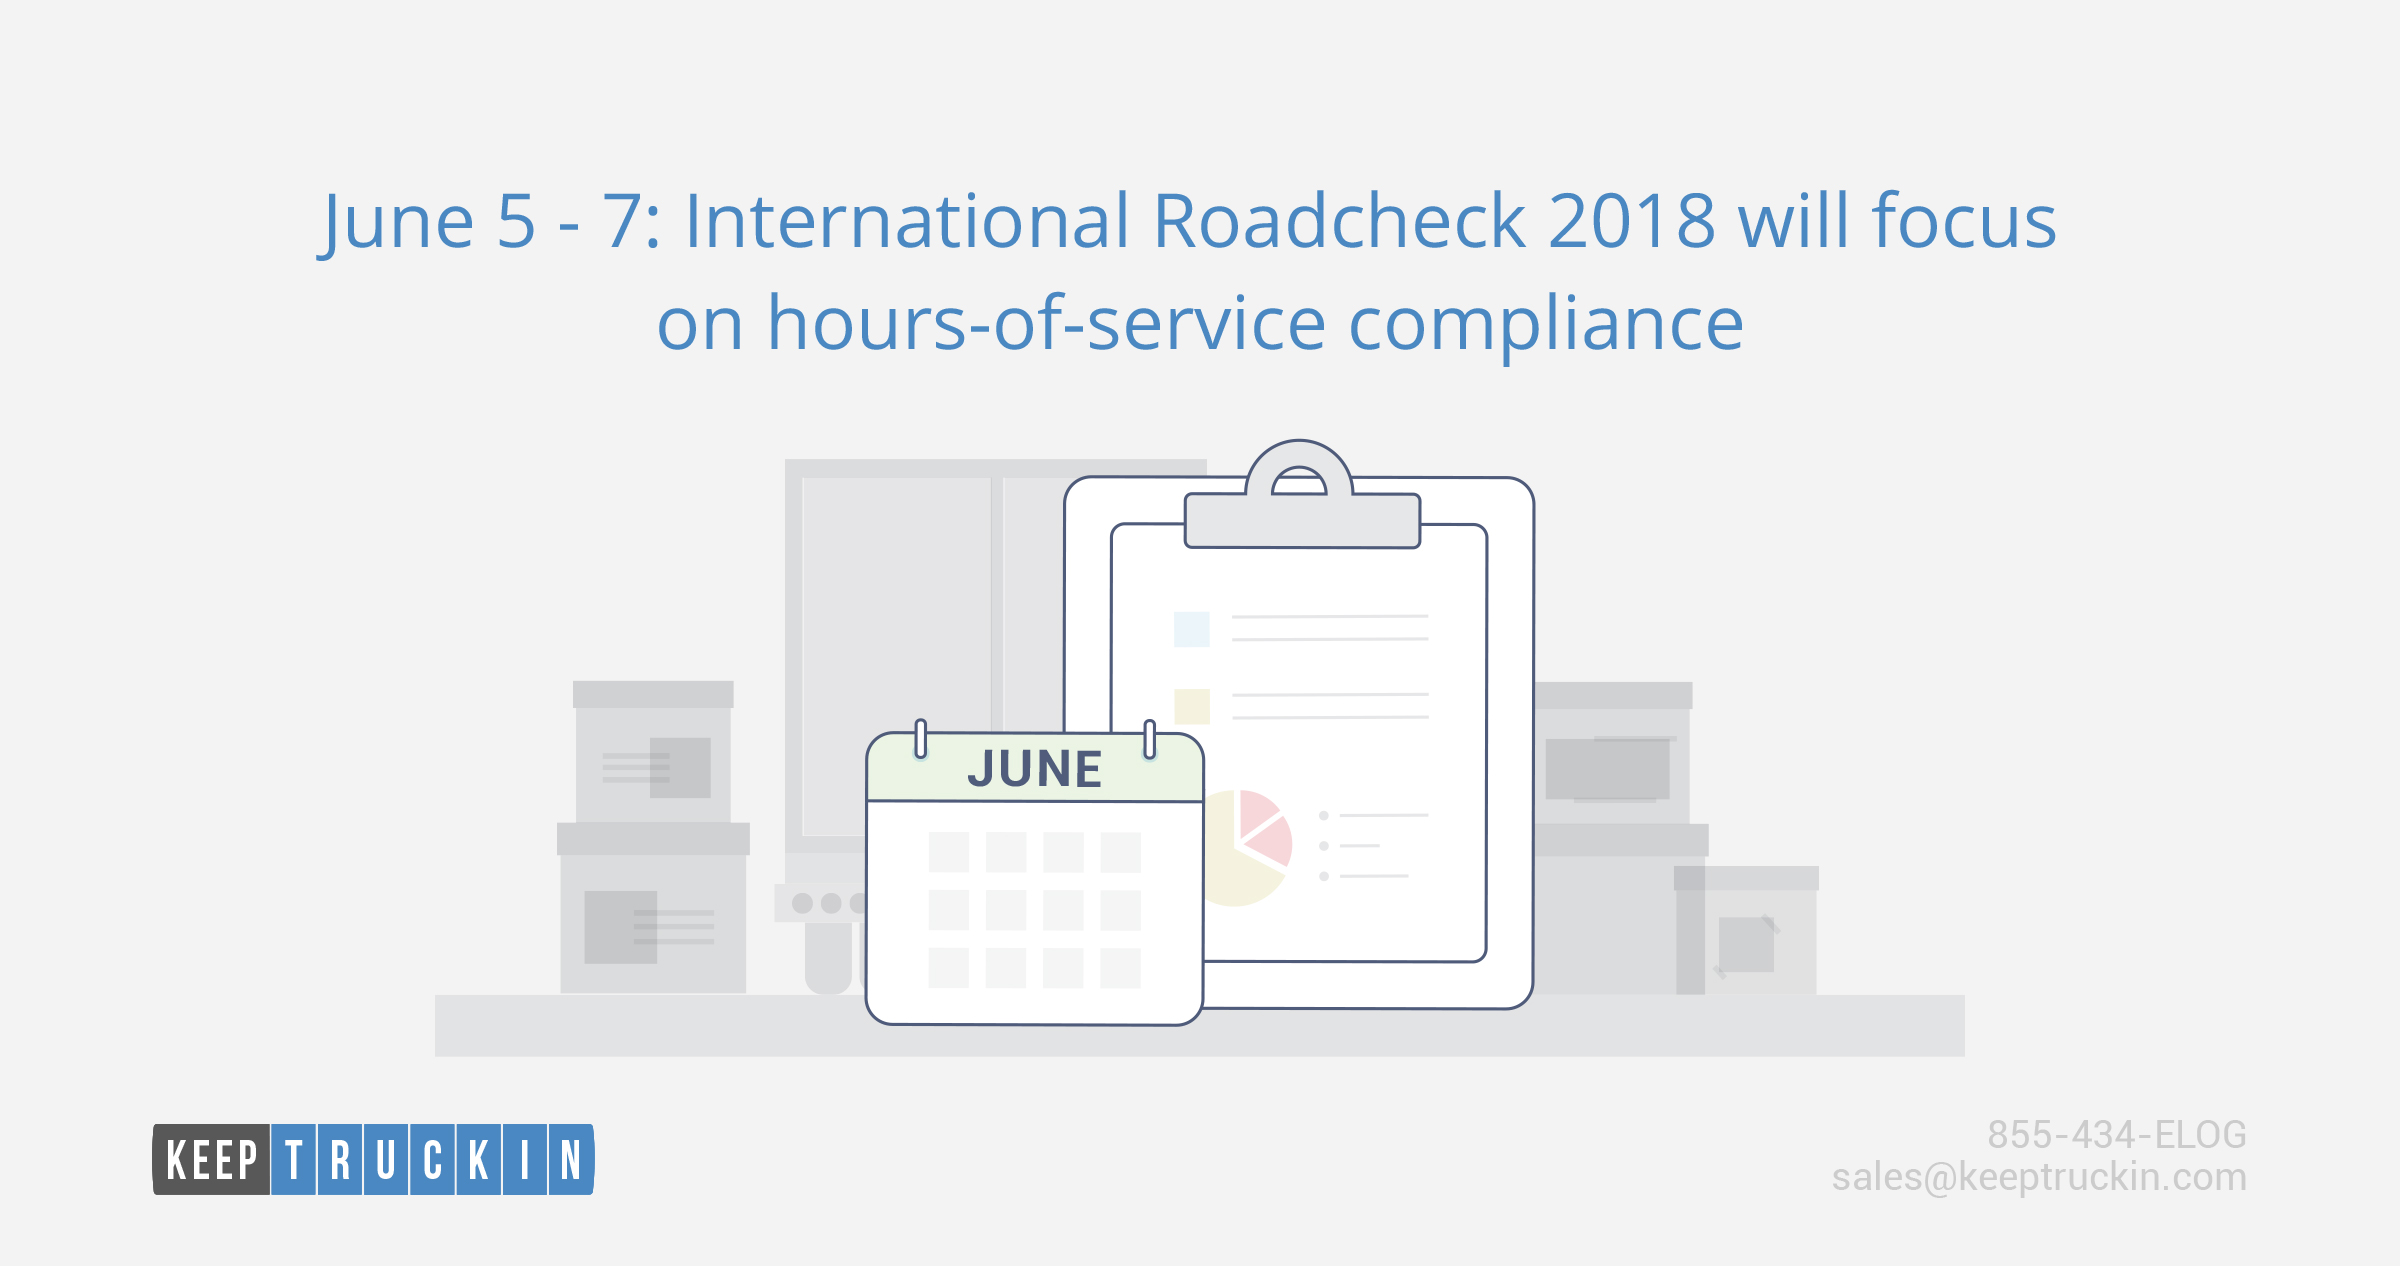 June 5 – 7: International Roadcheck 2018 will focus on hours-of-service compliance